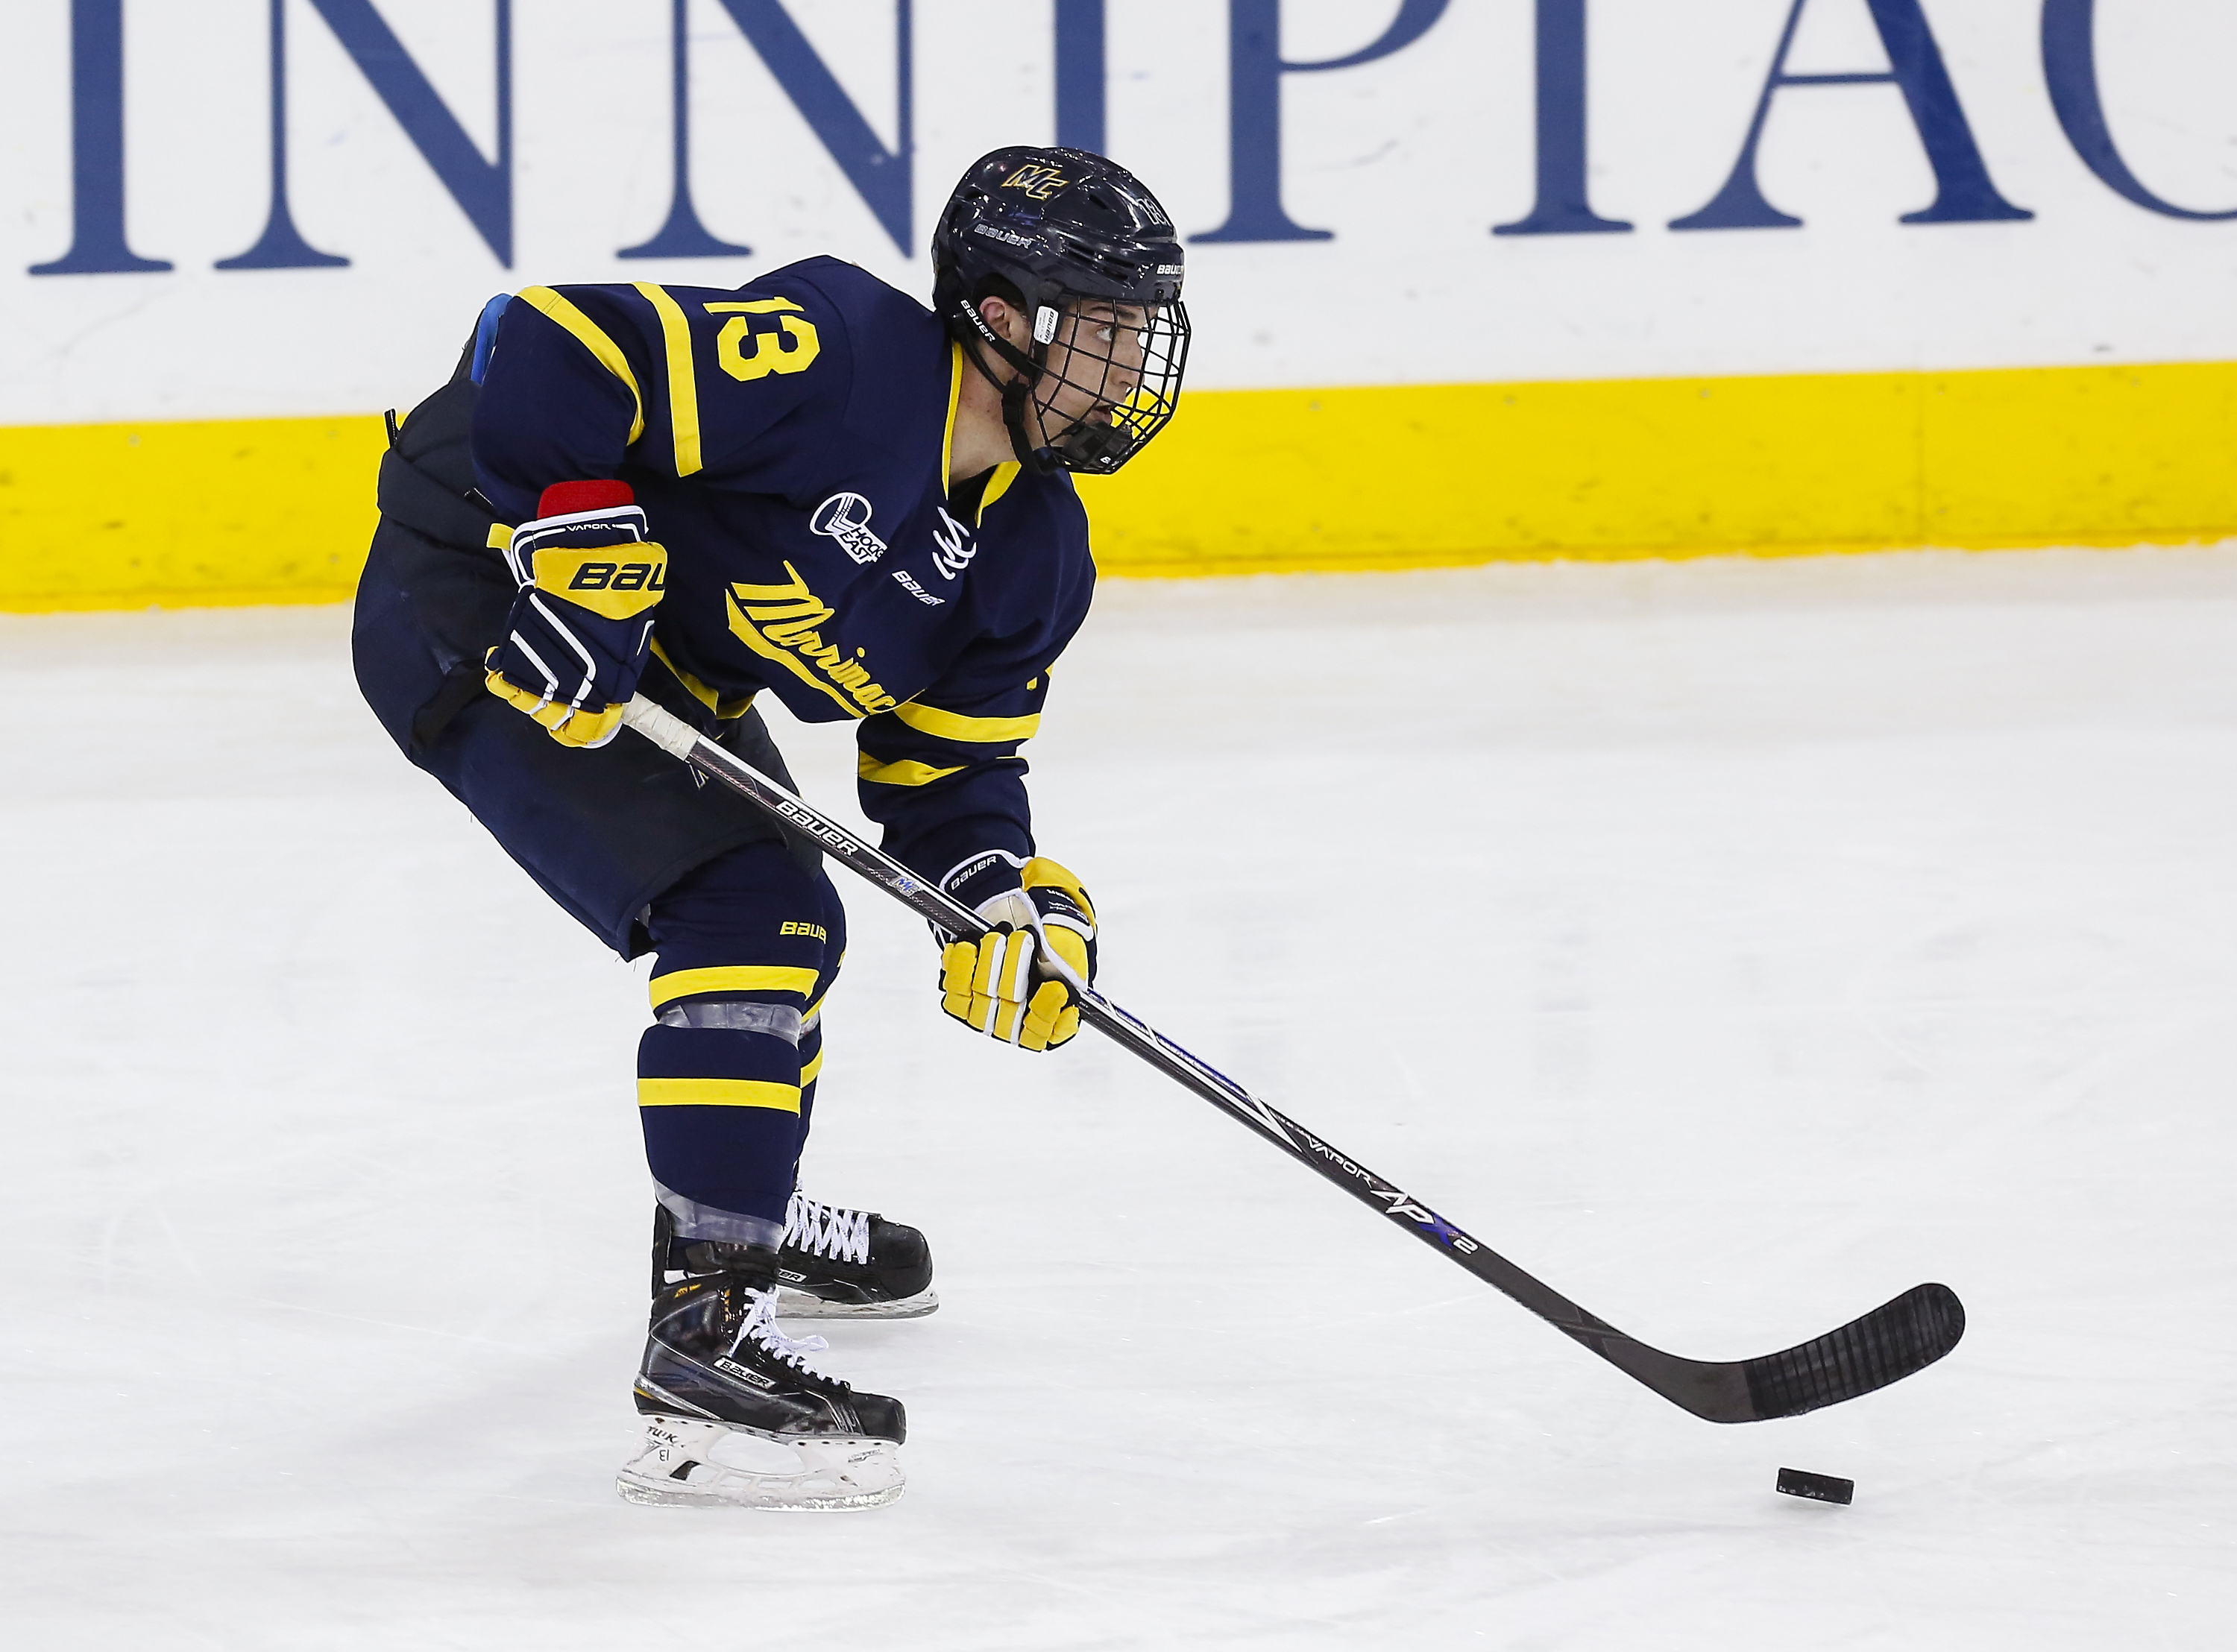 Hockey East: Merrimack Completes First-Ever Sweep Of BU, 4-1